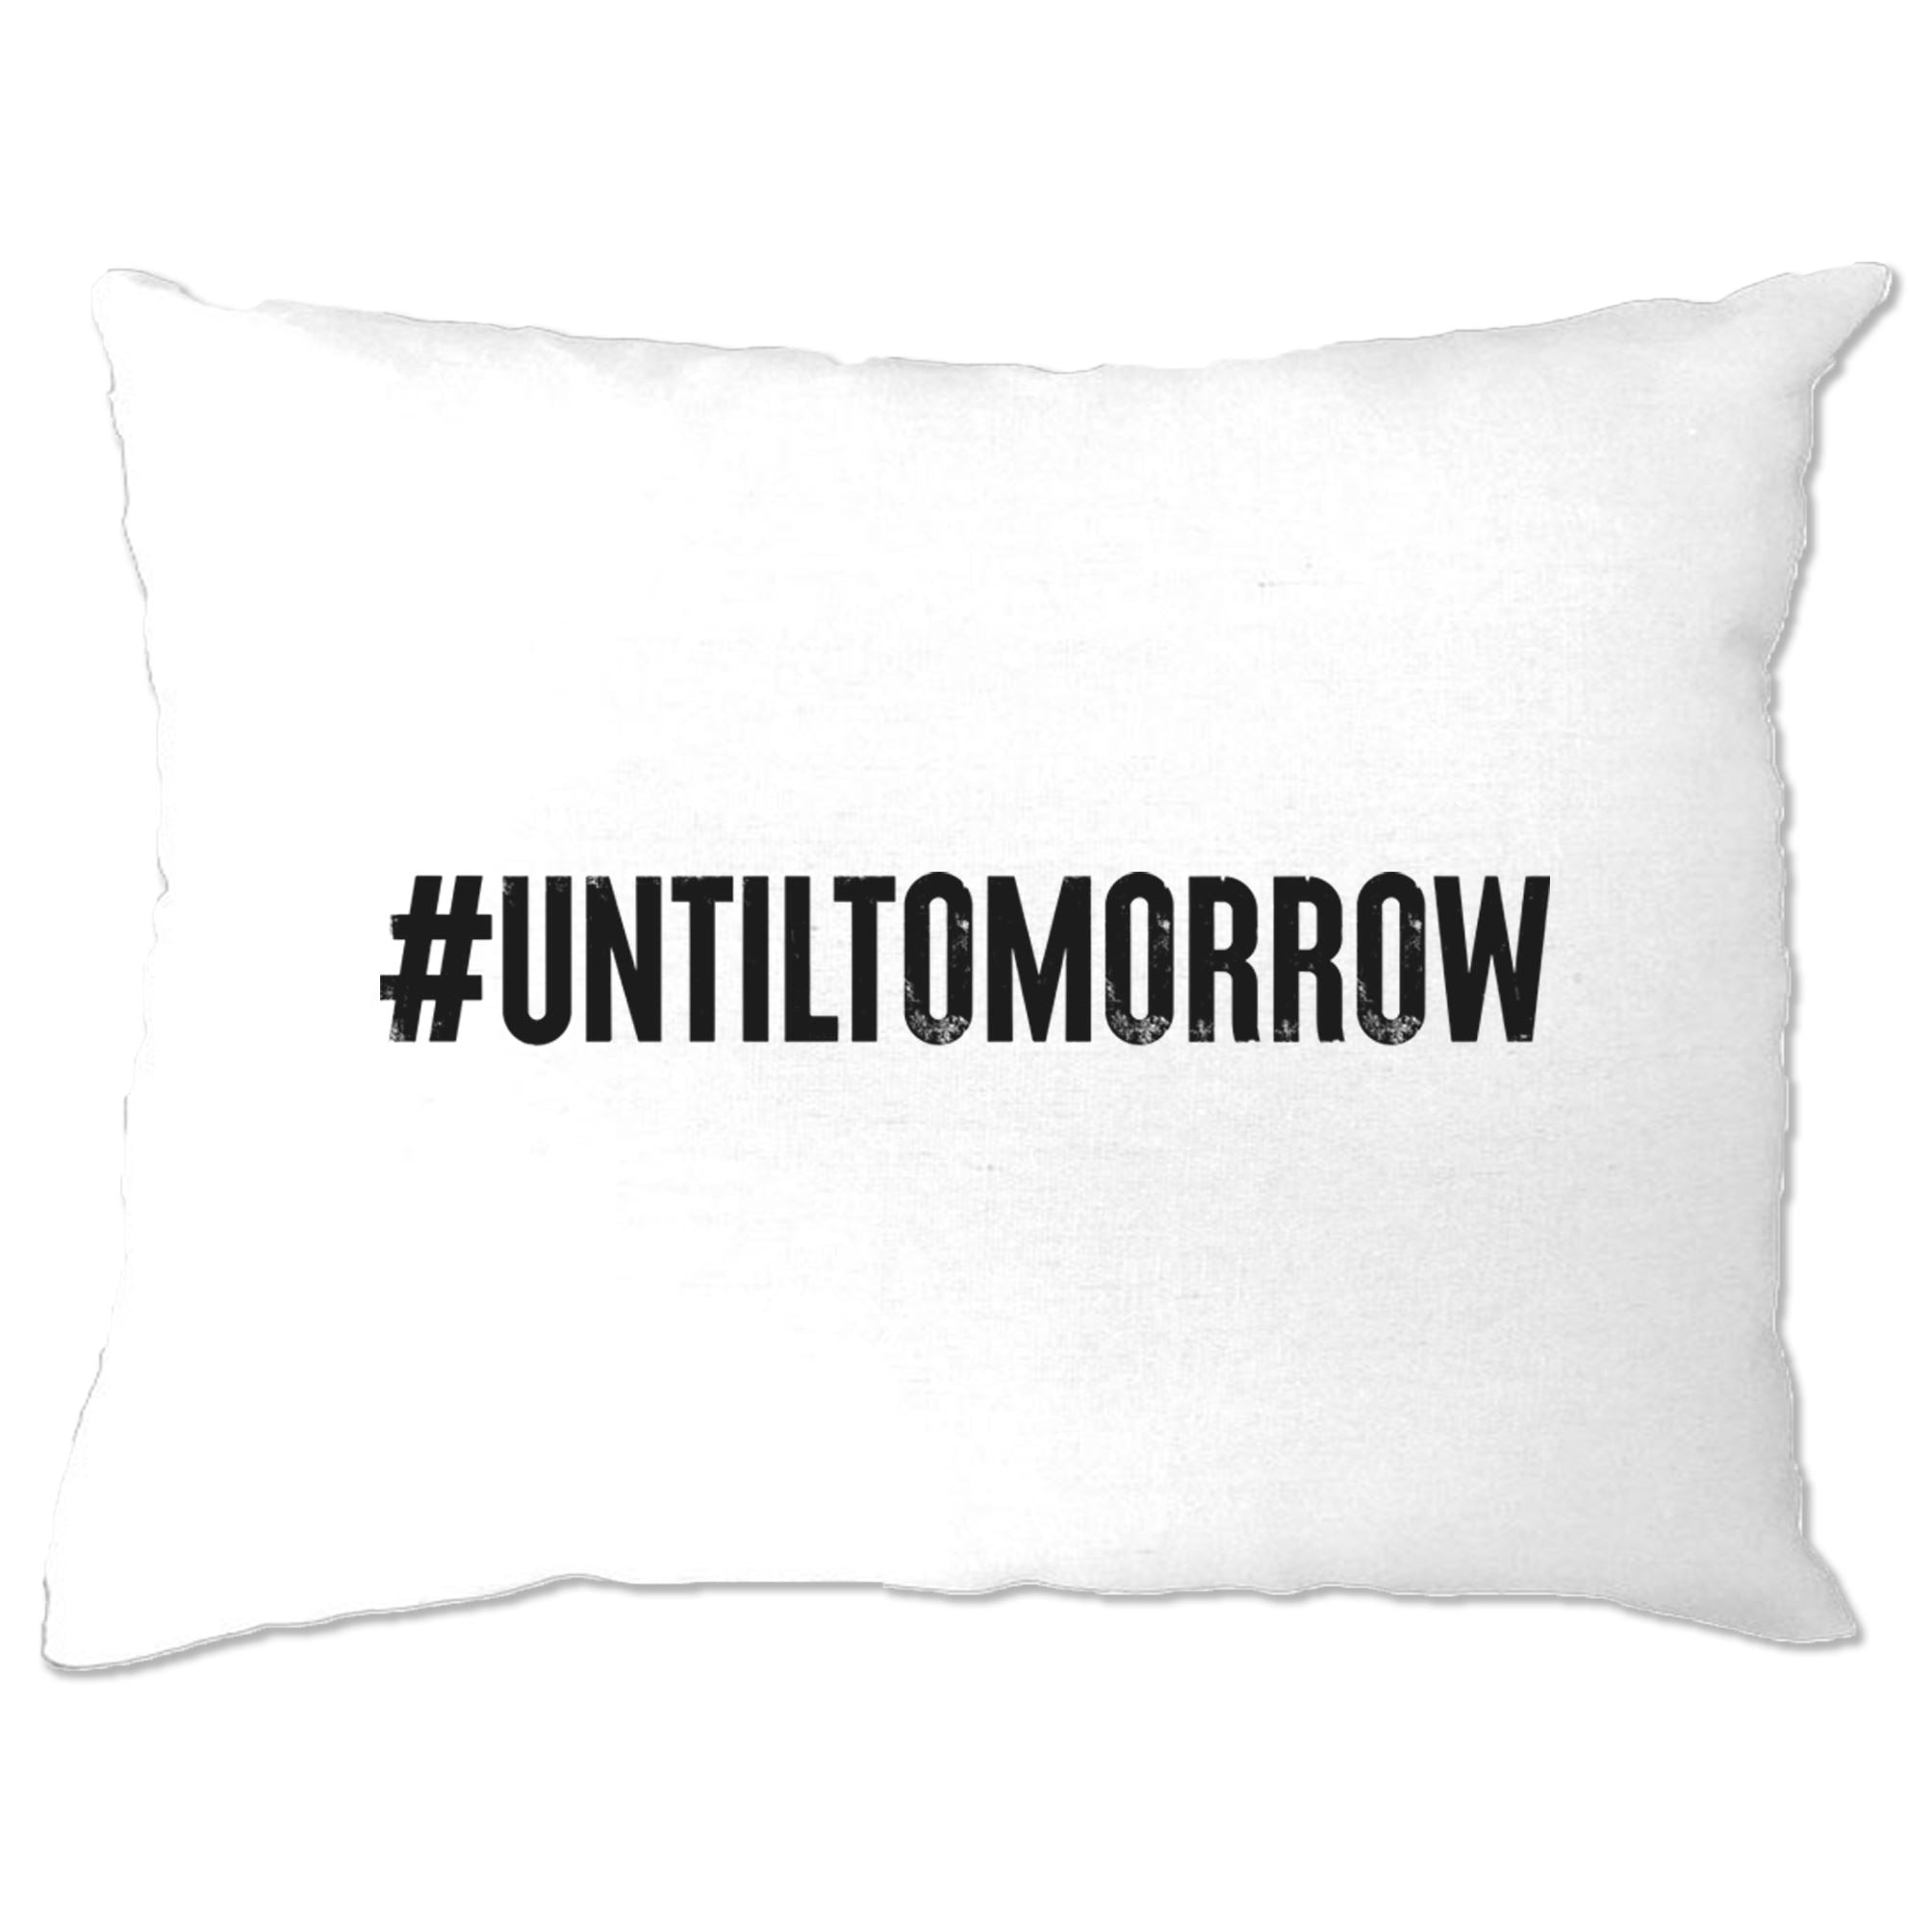 Until Tomorrow Pillow Case #UntilTomorrow Internet Trend